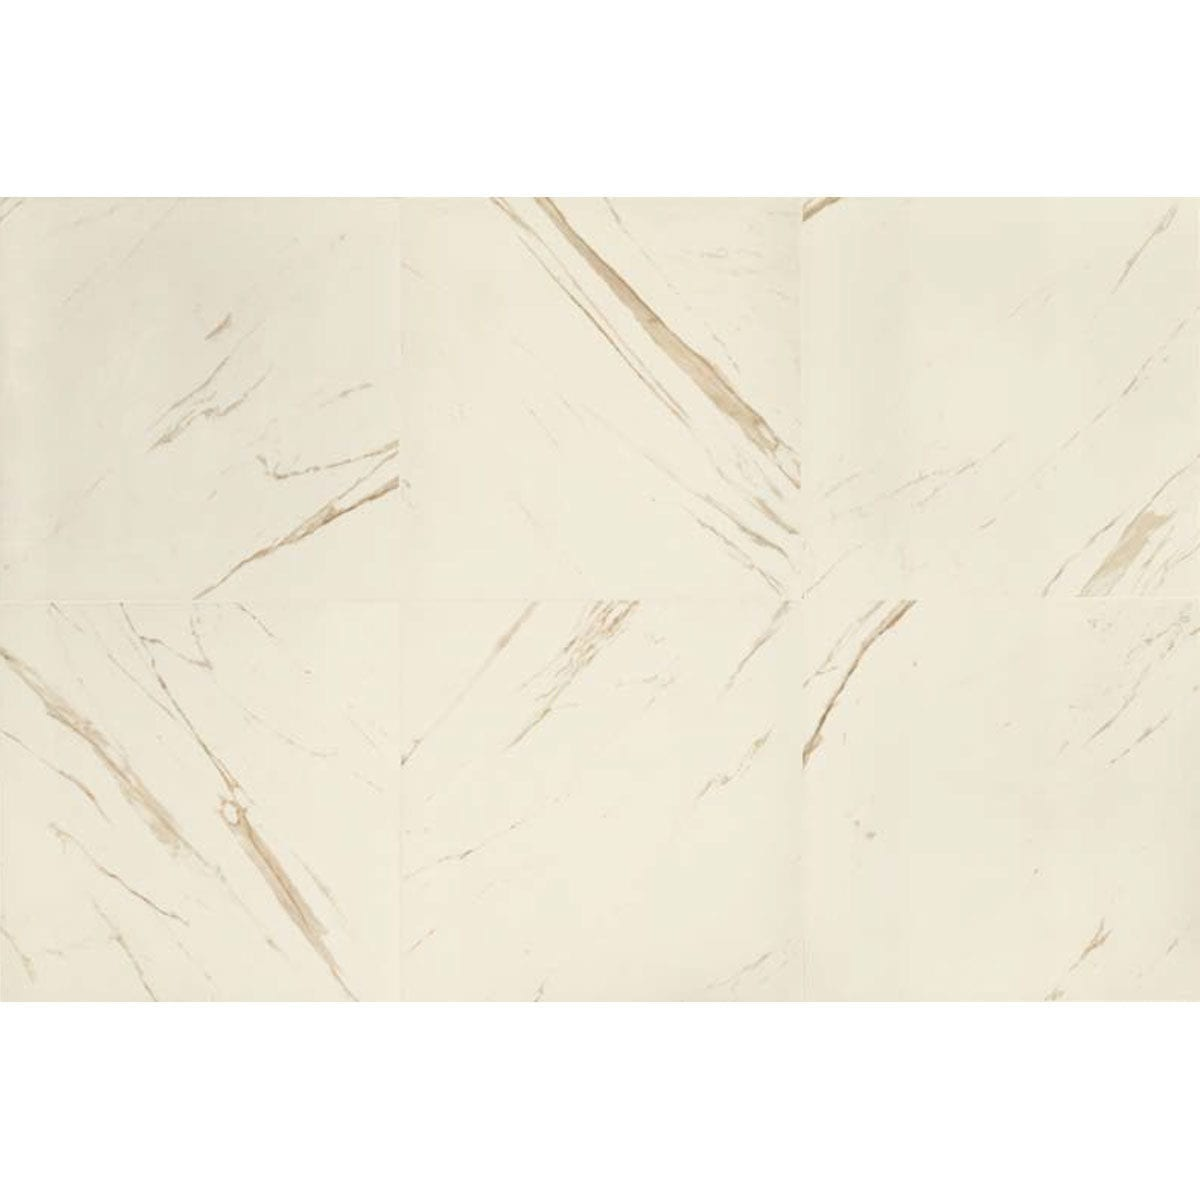 T10804 VERSACE MARBLE BIANCO 24X24 LAPPATO